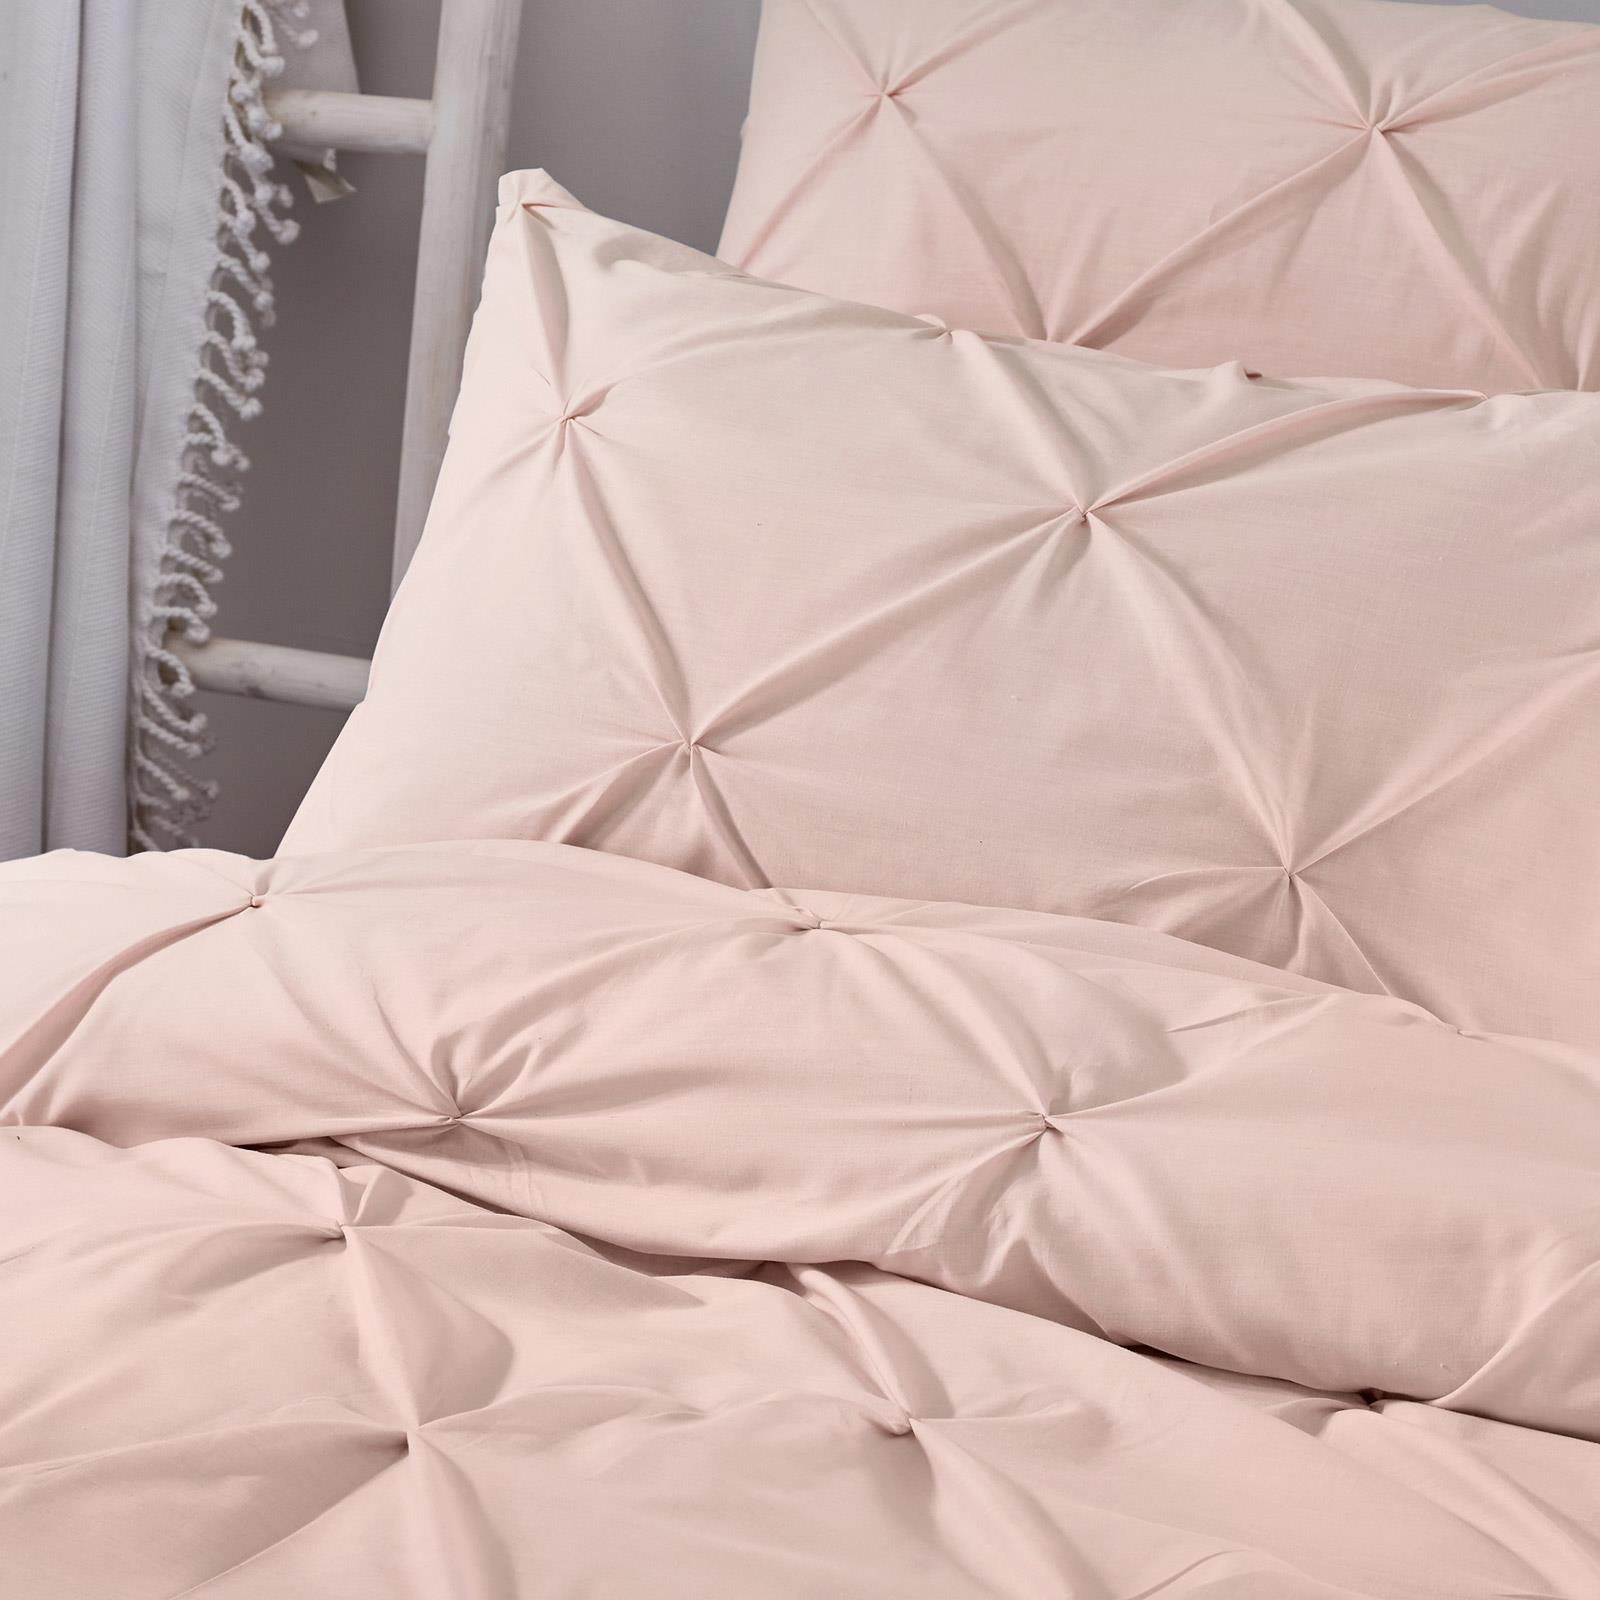 Blush-Duvet-Covers-Ruched-Pin-Tuck-Stitched-Plain-Pink-Quilt-Cover-Bedding-Sets thumbnail 4